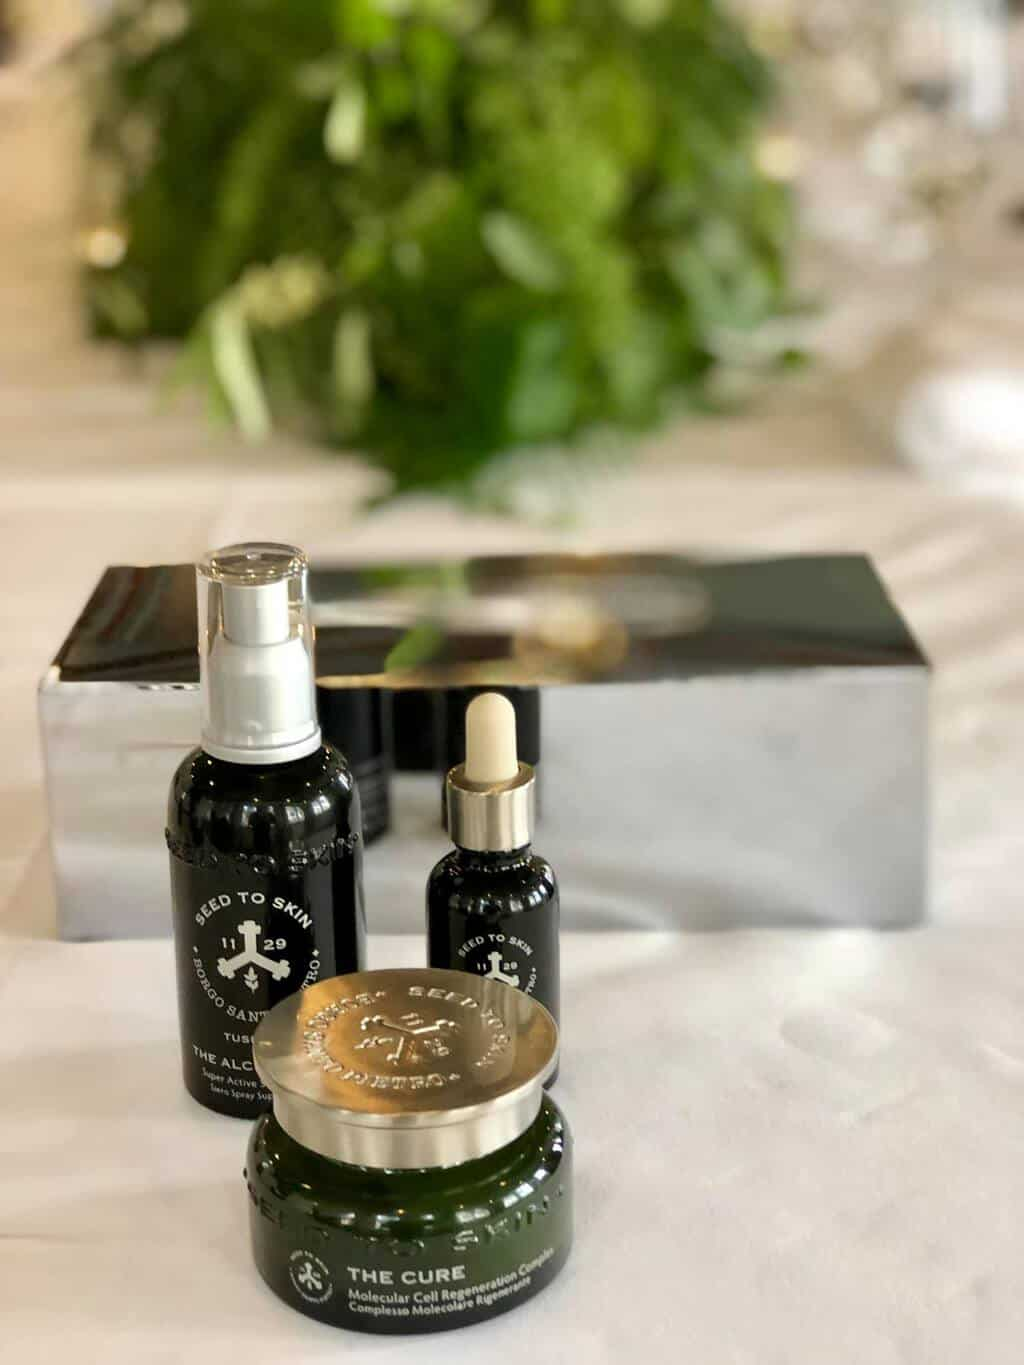 Seed To Skin - Luxury Natural Skincare at Parfumerie Spitzenhaus Zurich